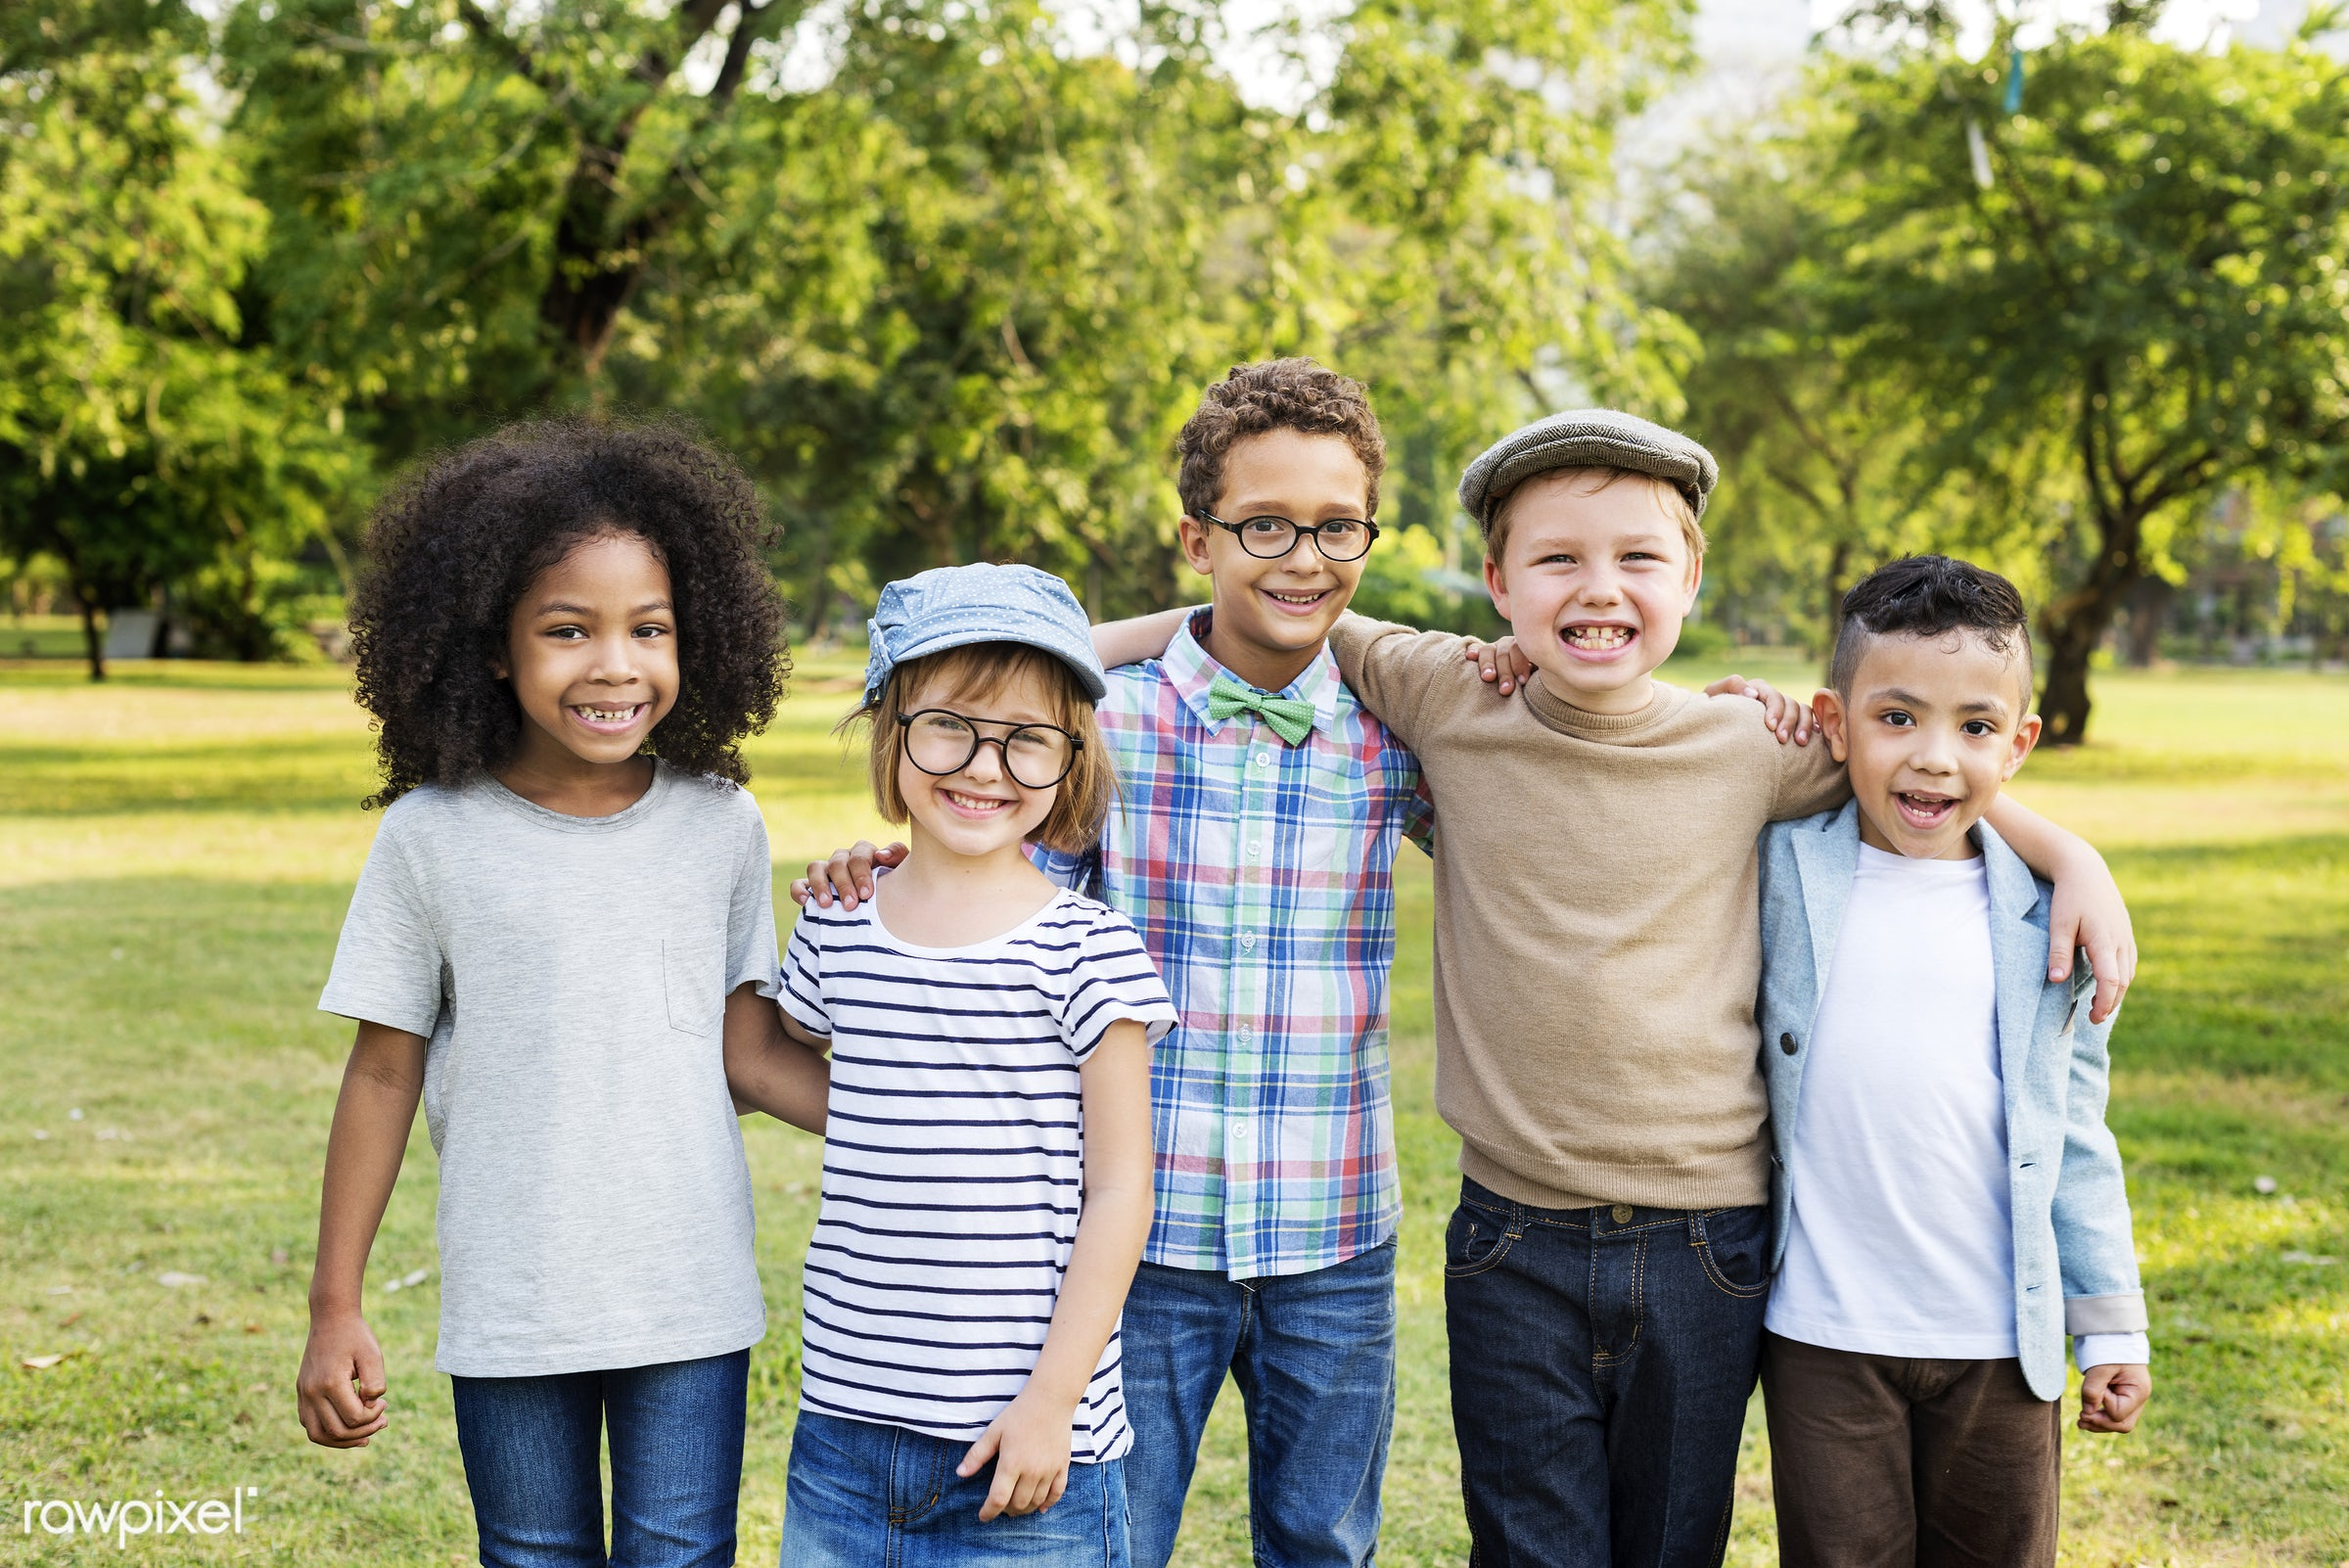 Happy kids in the park - action, active, activity, adorable, african descent, asian ethnicity, boys, casual, cheerful, child...